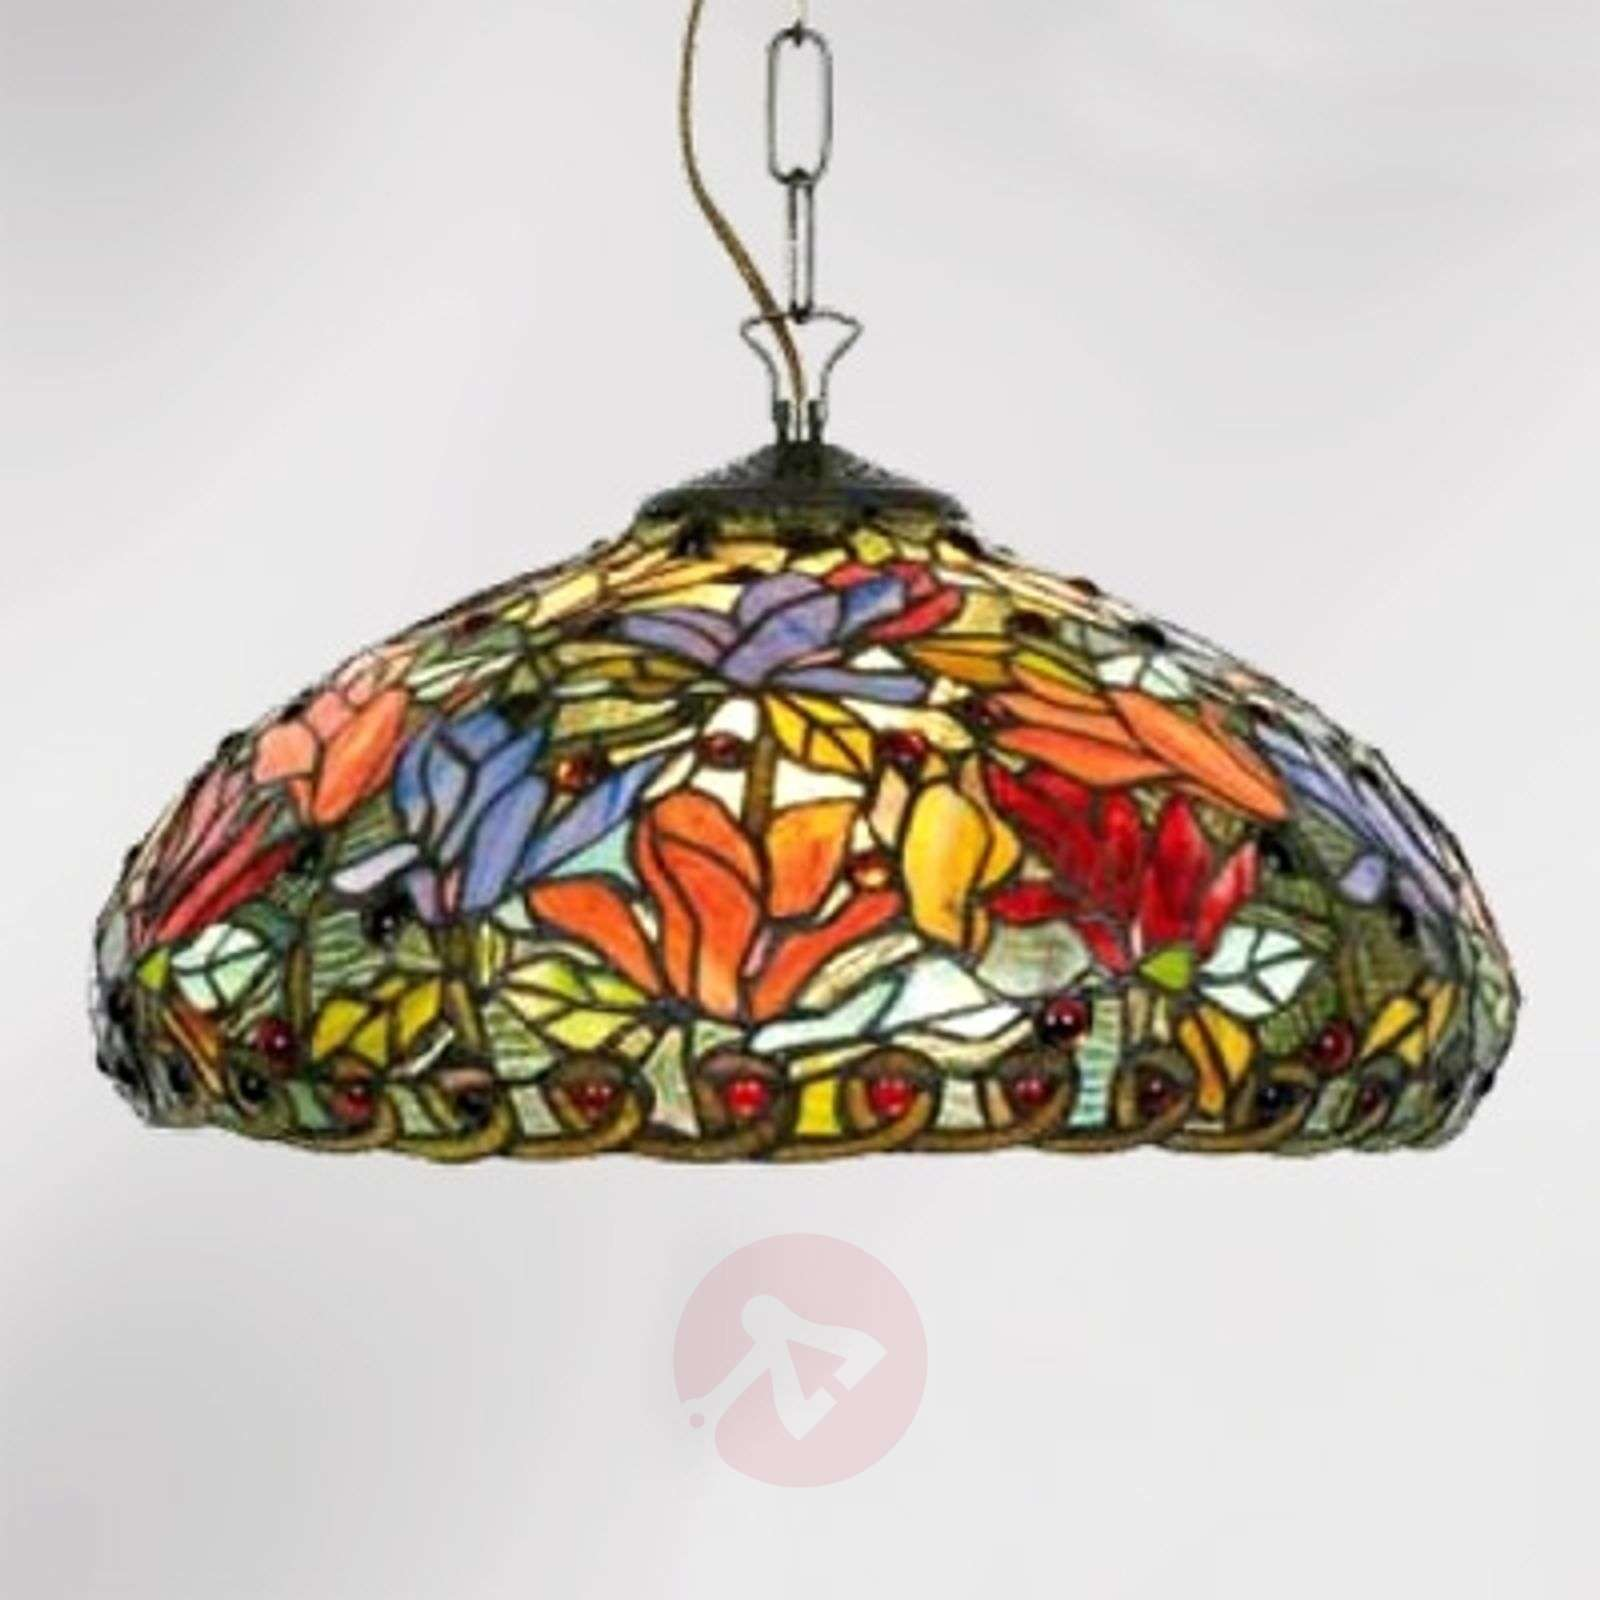 Hanging light Elaine, floral Tiffany style, 2-bulb-1032252-01